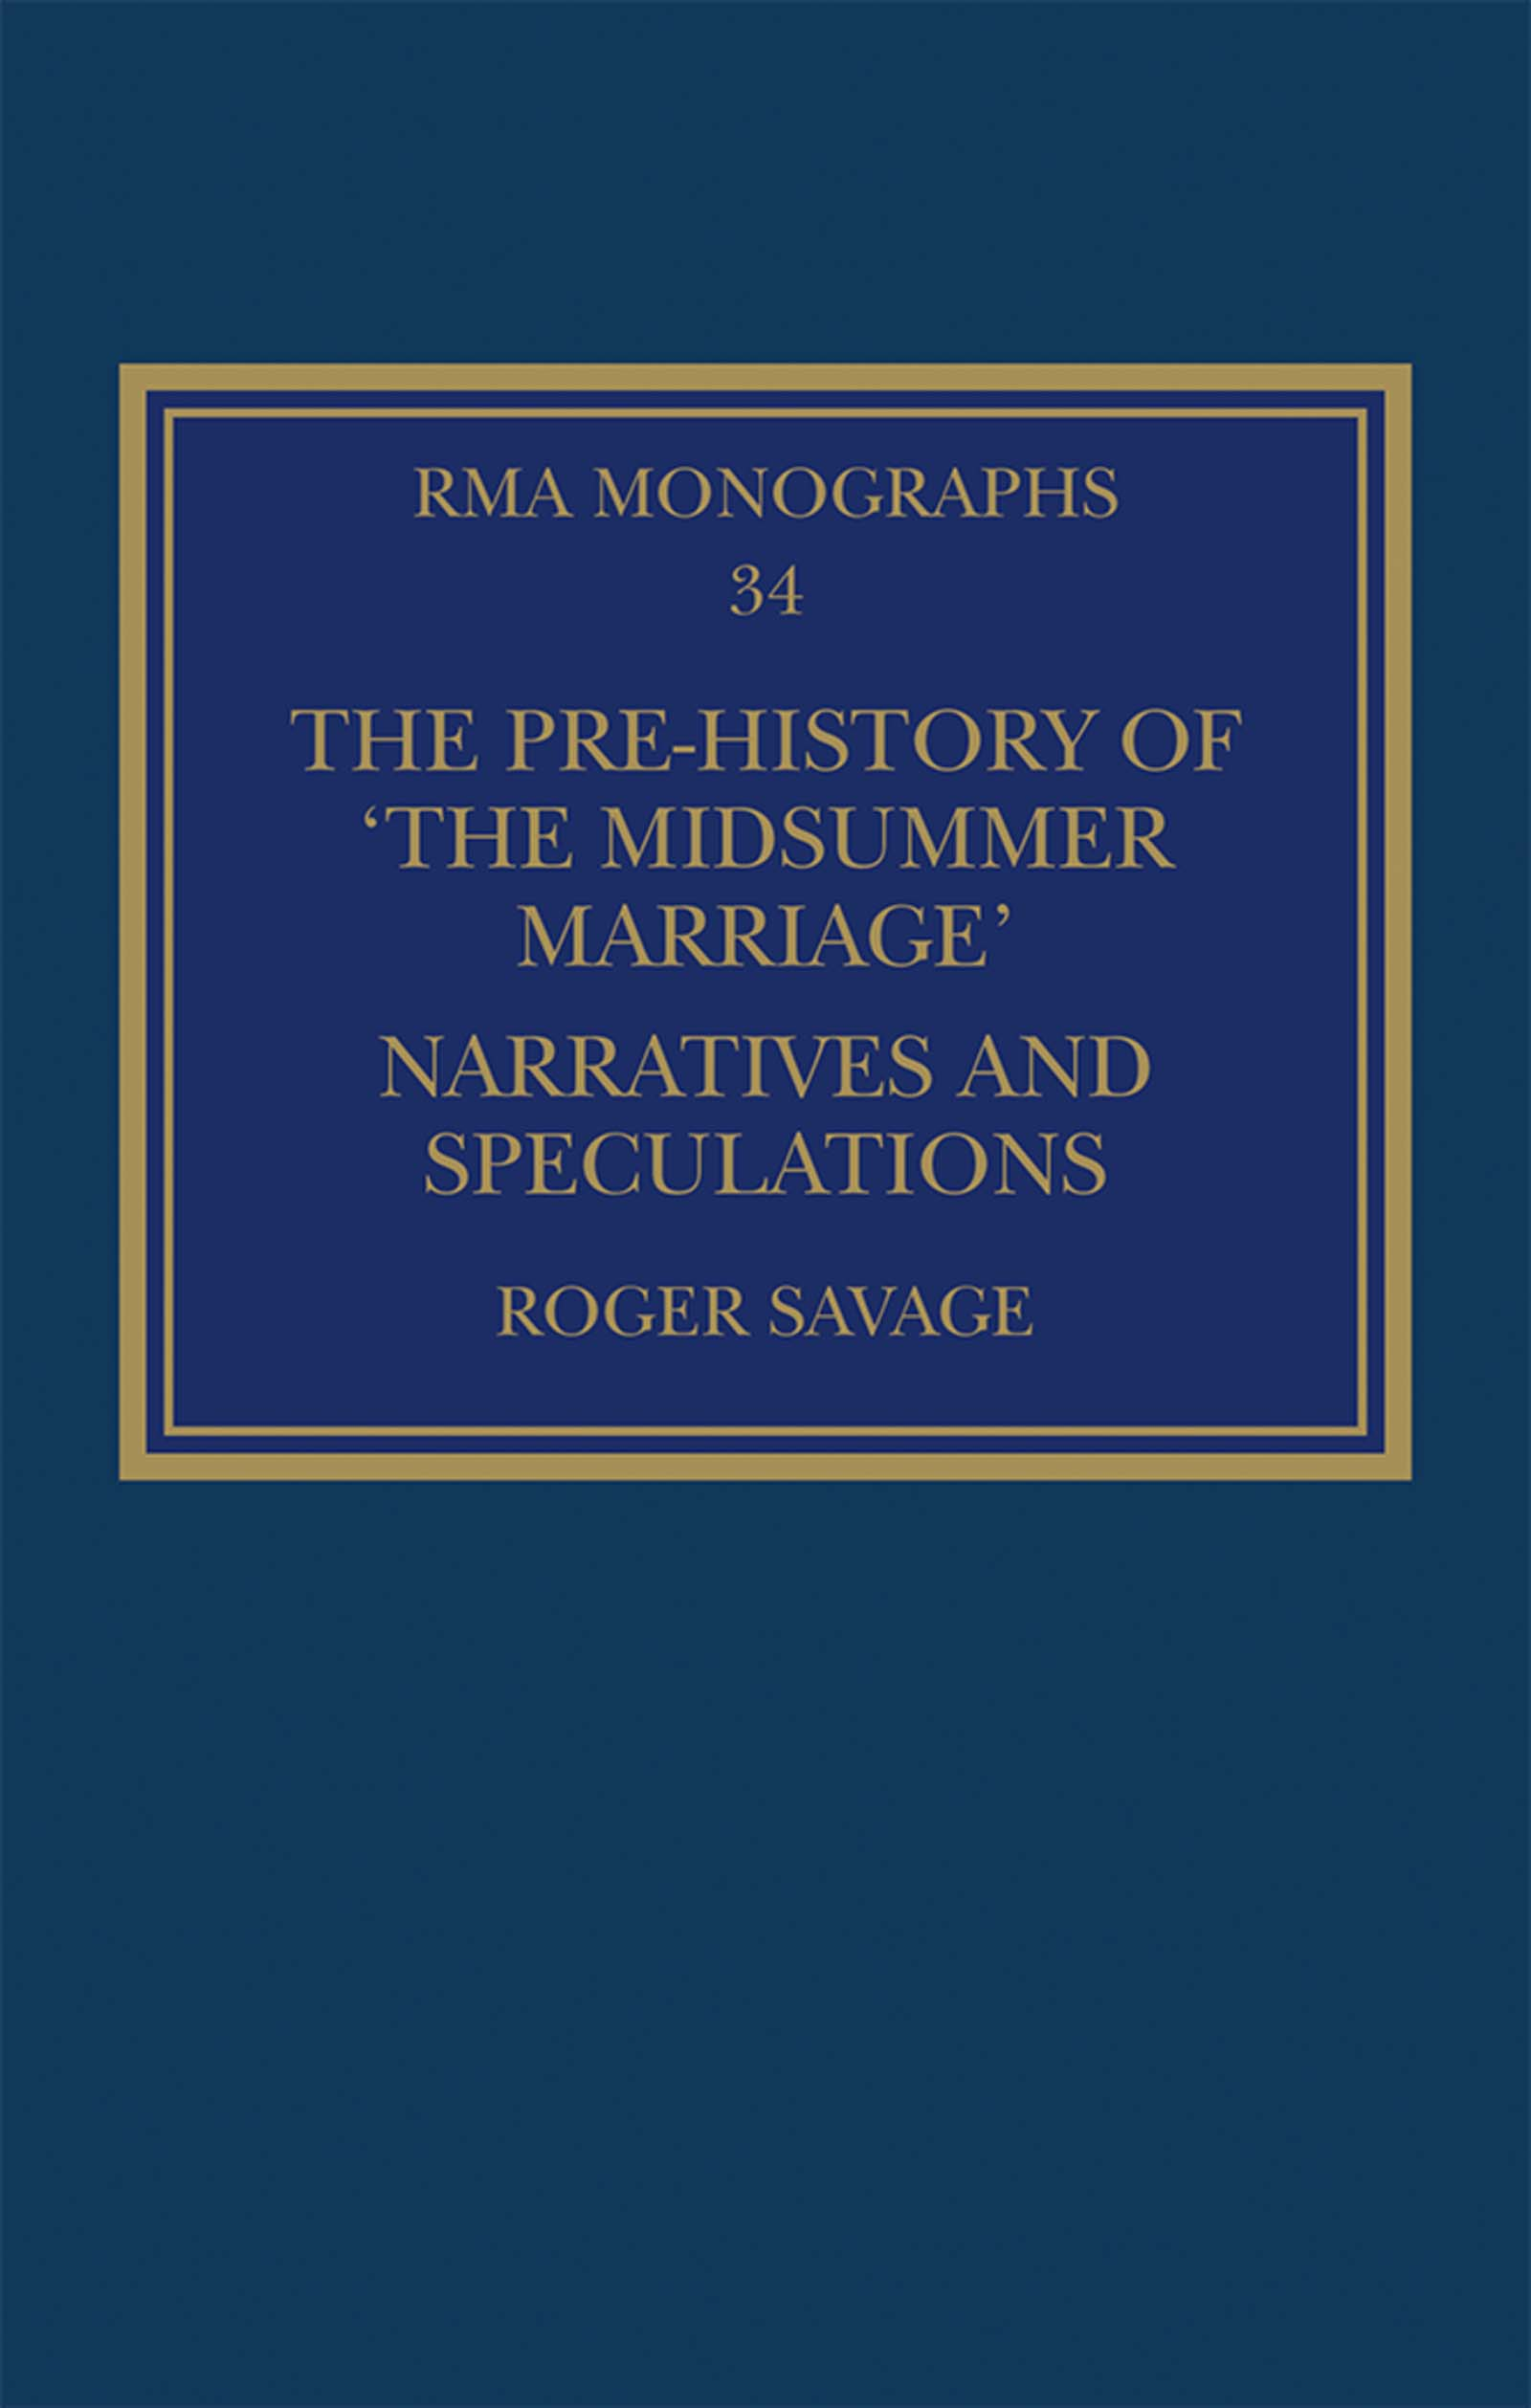 The Pre-history of 'The Midsummer Marriage': Narratives and Speculations book cover